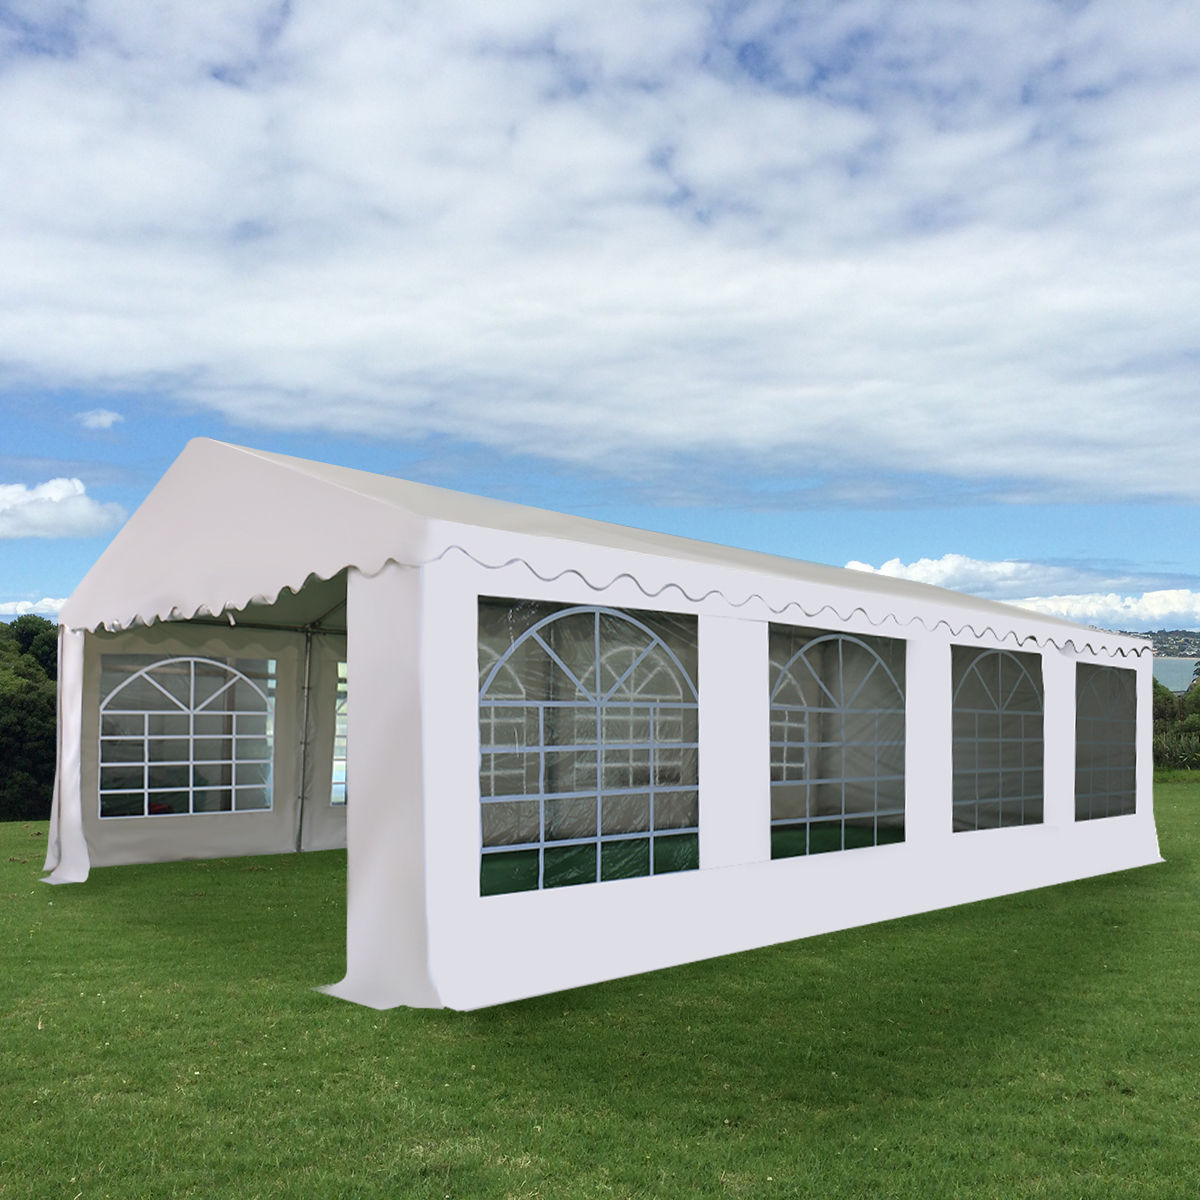 Click here to buy Costway 16 2 5'X26' Wedding Tent Shelter Heavy Duty Outdoor Party Canopy Carport White by Costway.